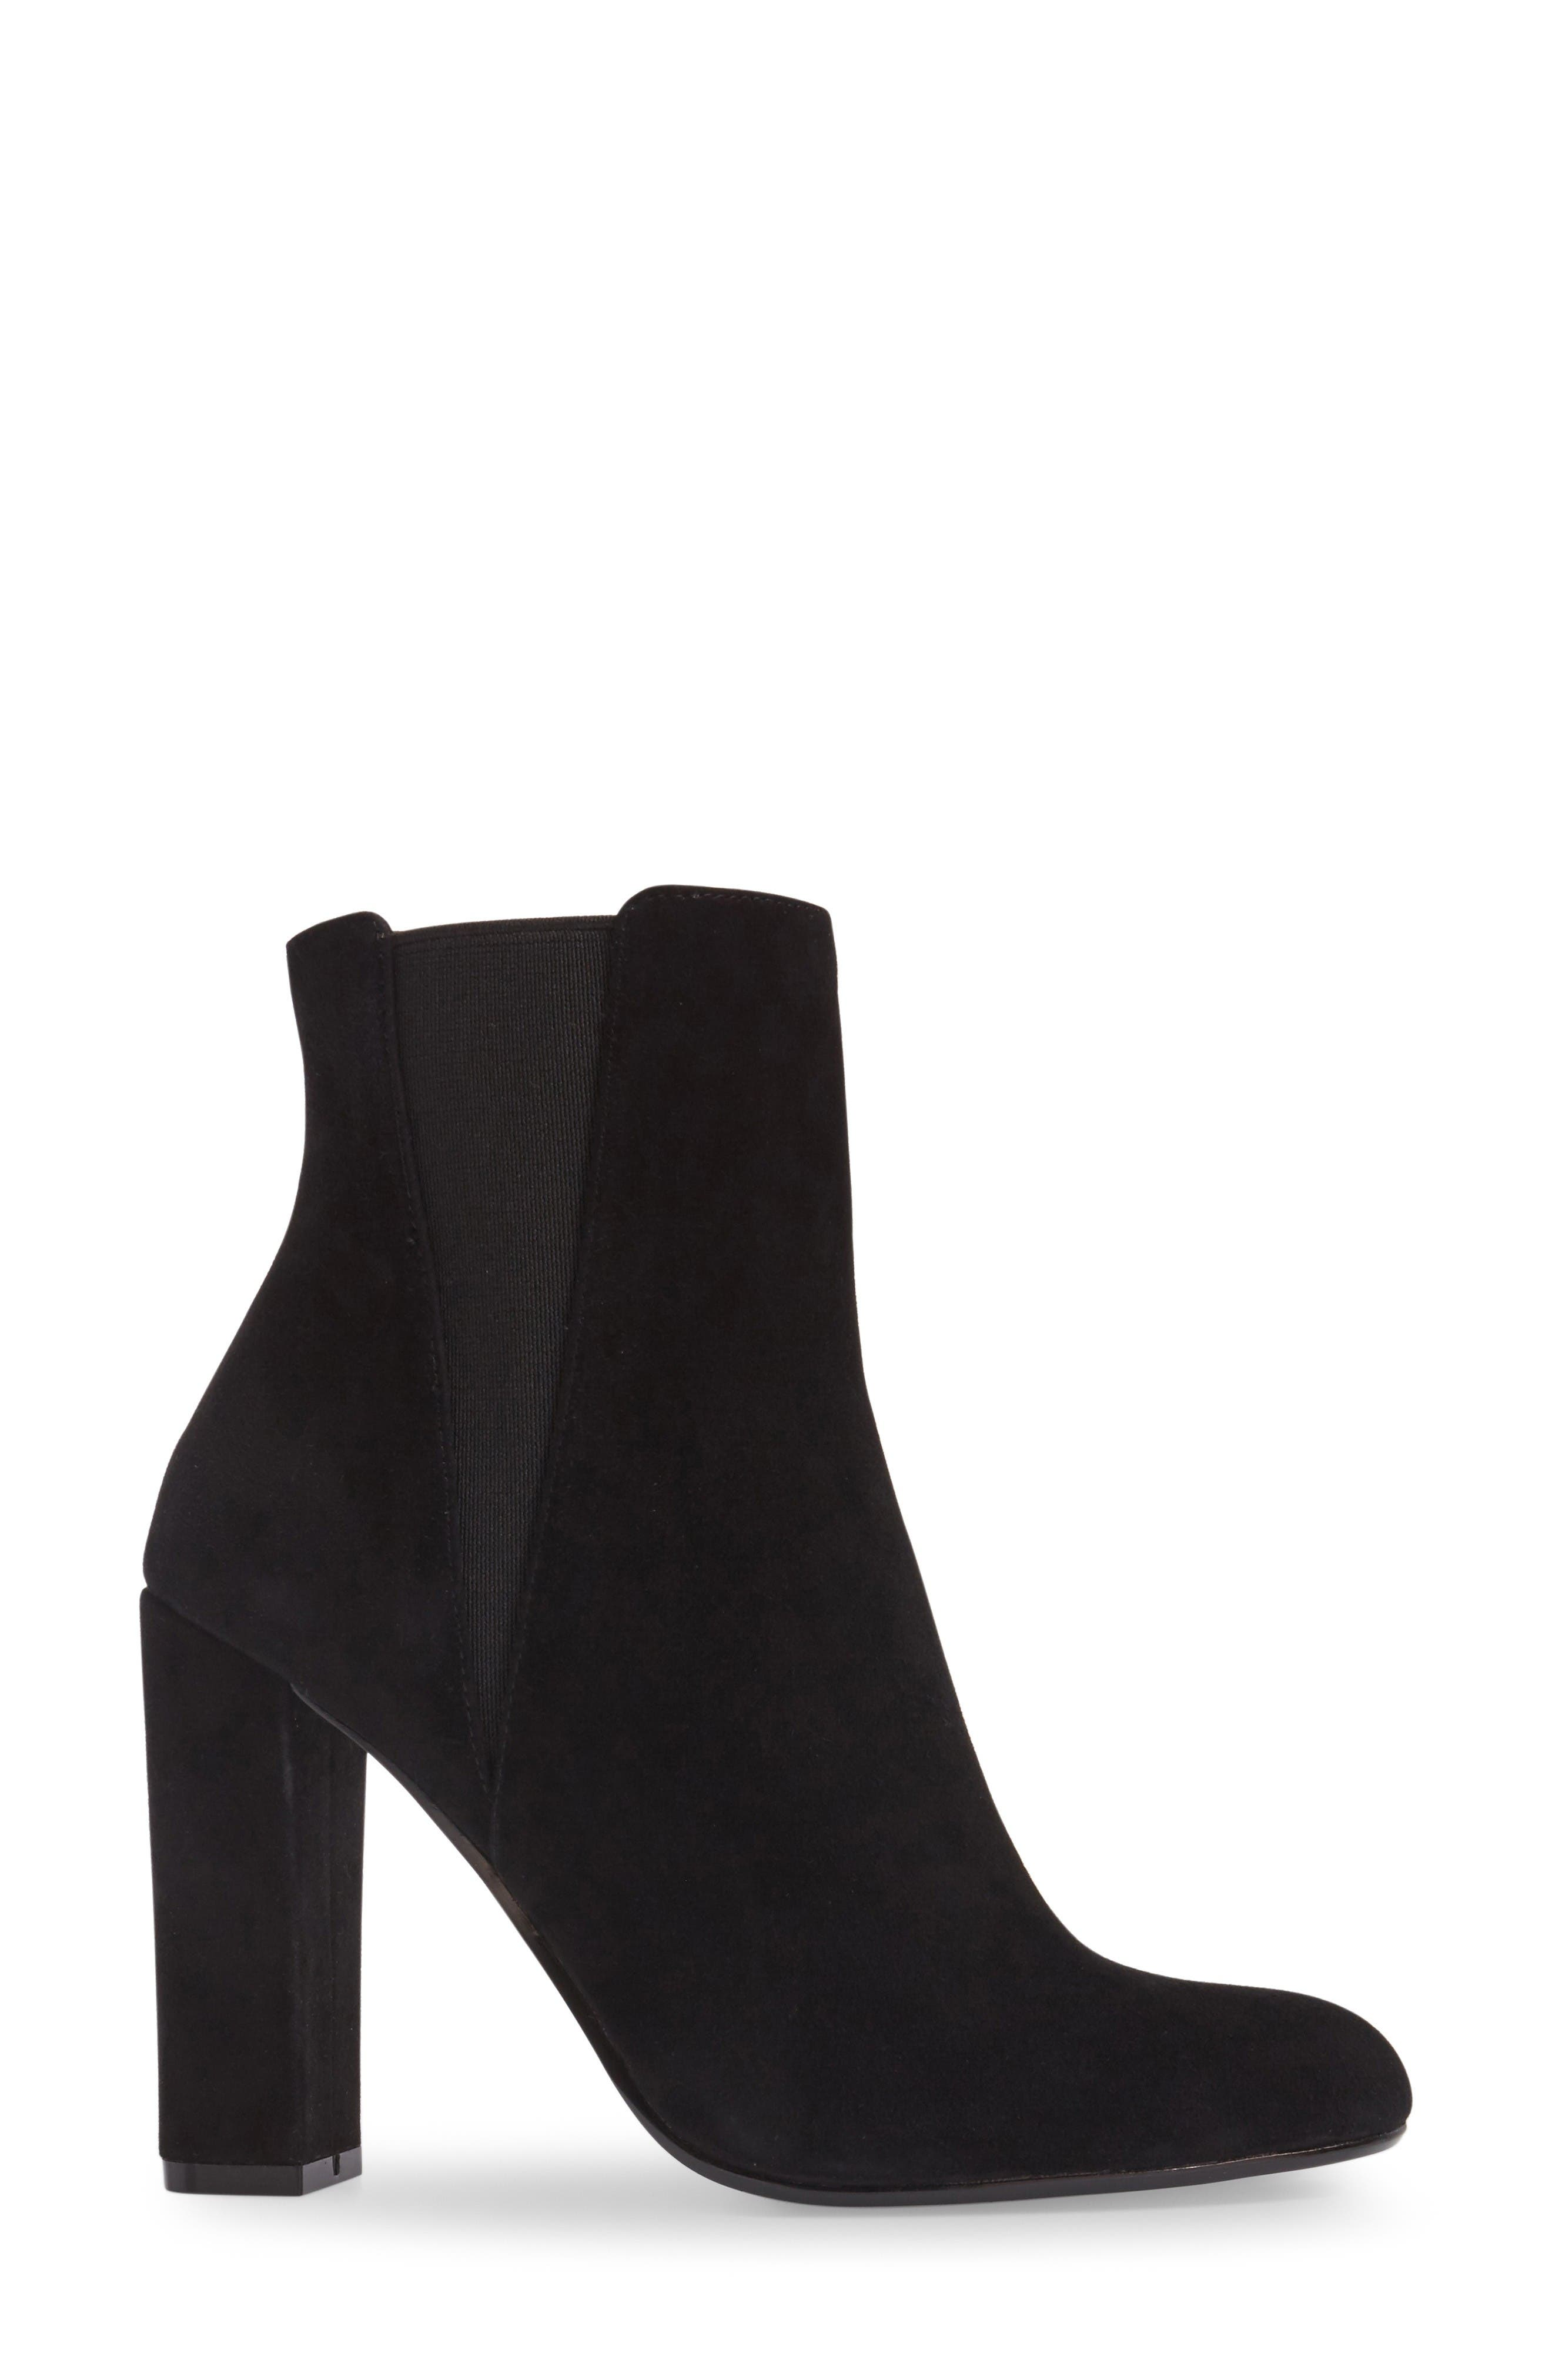 Alternate Image 3  - Steve Madden Effect Block Heel Bootie (Women)